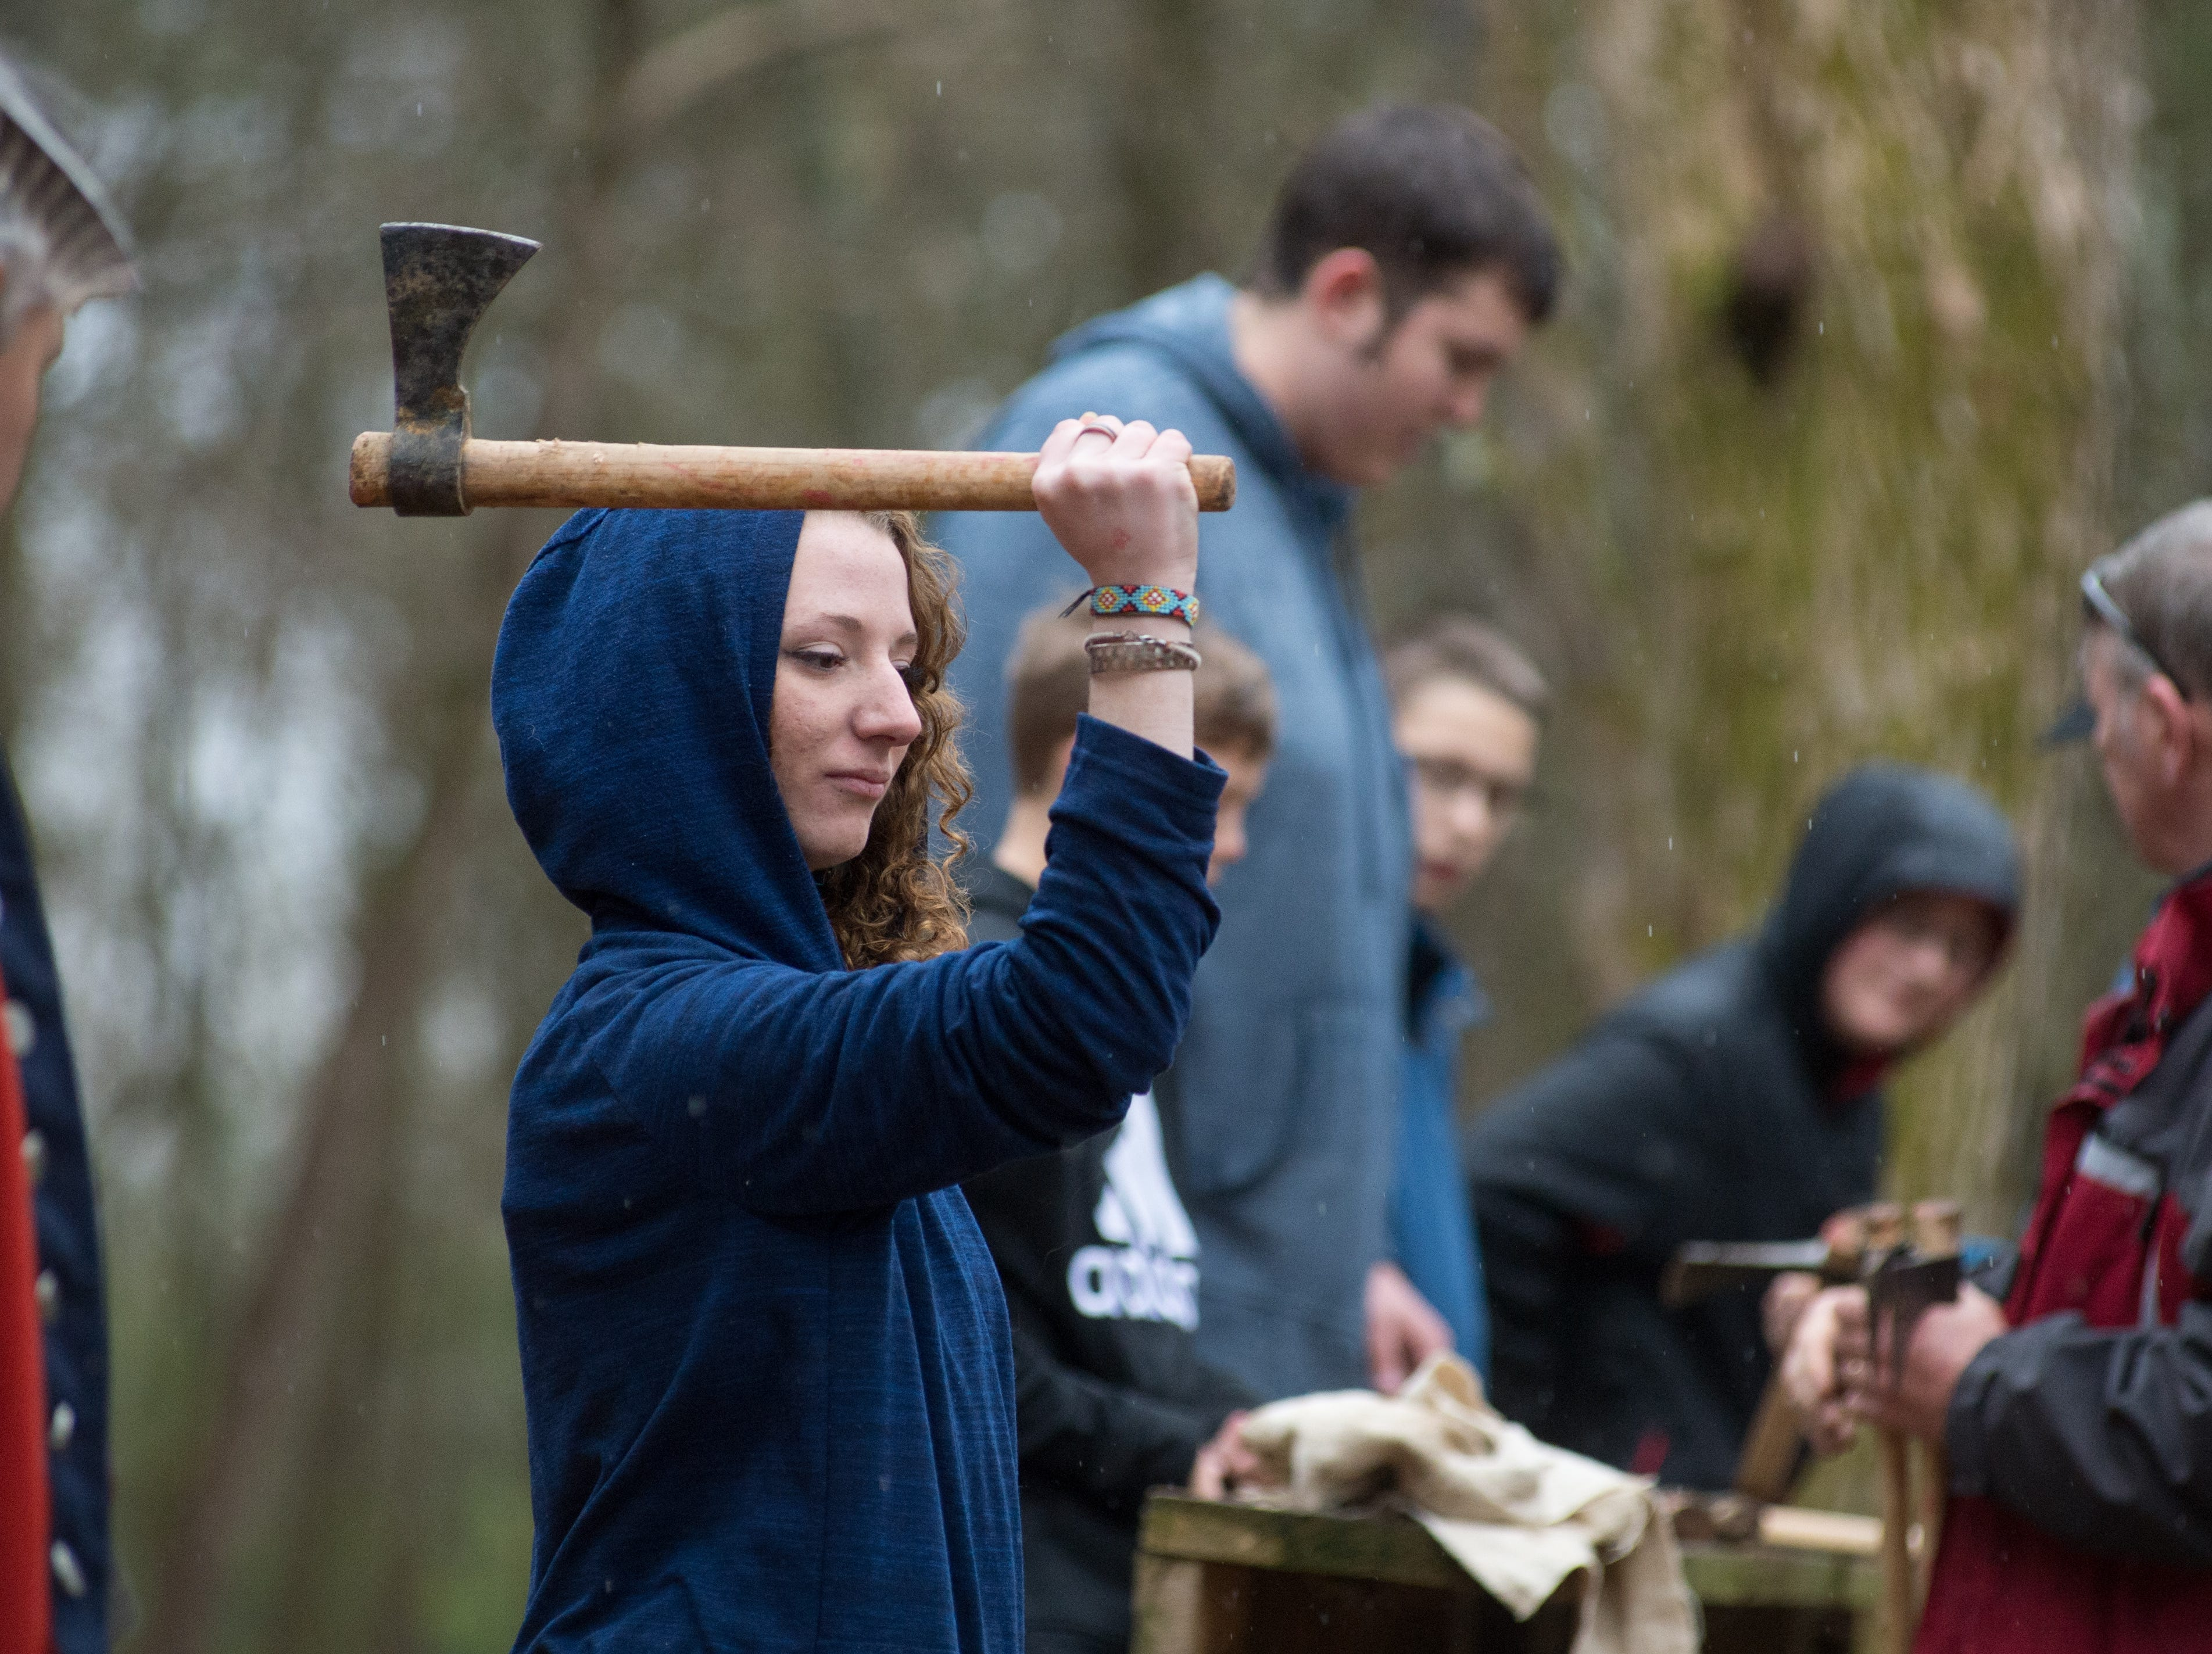 Emily May participates in a Tomahawk Throwing for Beginners event hosted by Middle Tennessee History Coalition at Bledsoe Creek State Park on Saturday, Jan. 12.